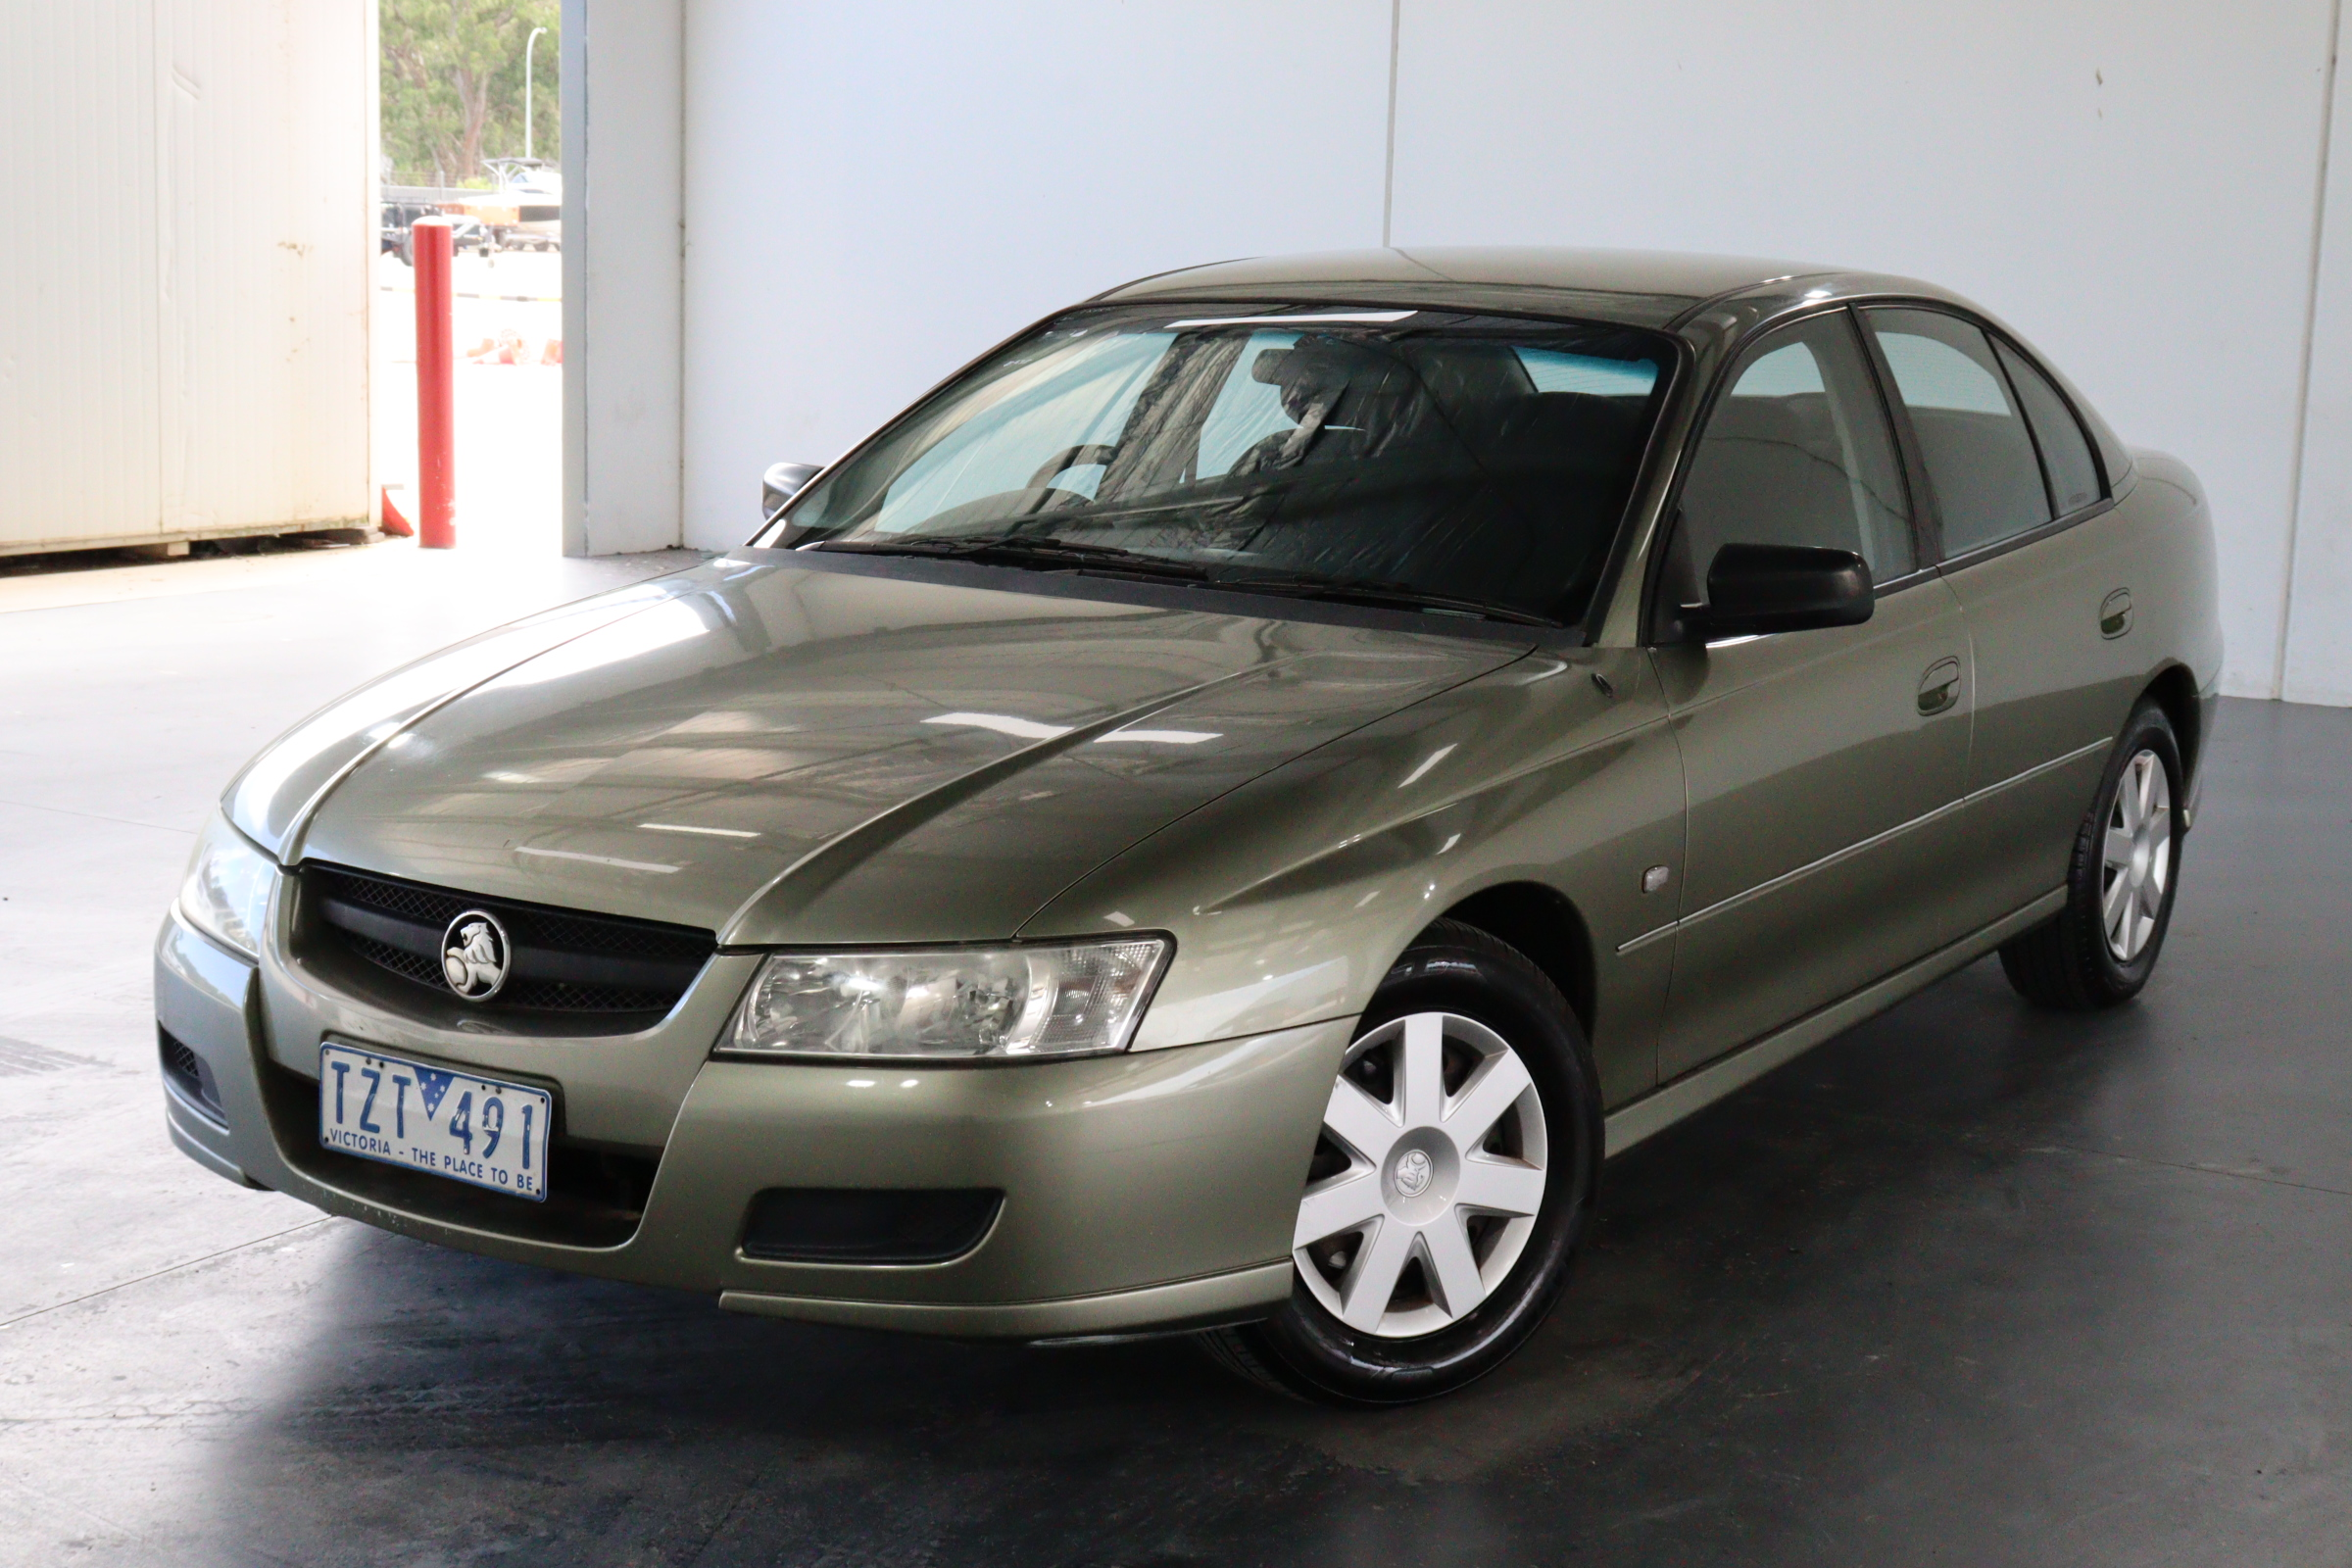 2006 Holden Commodore Executive VZ Automatic Sedan